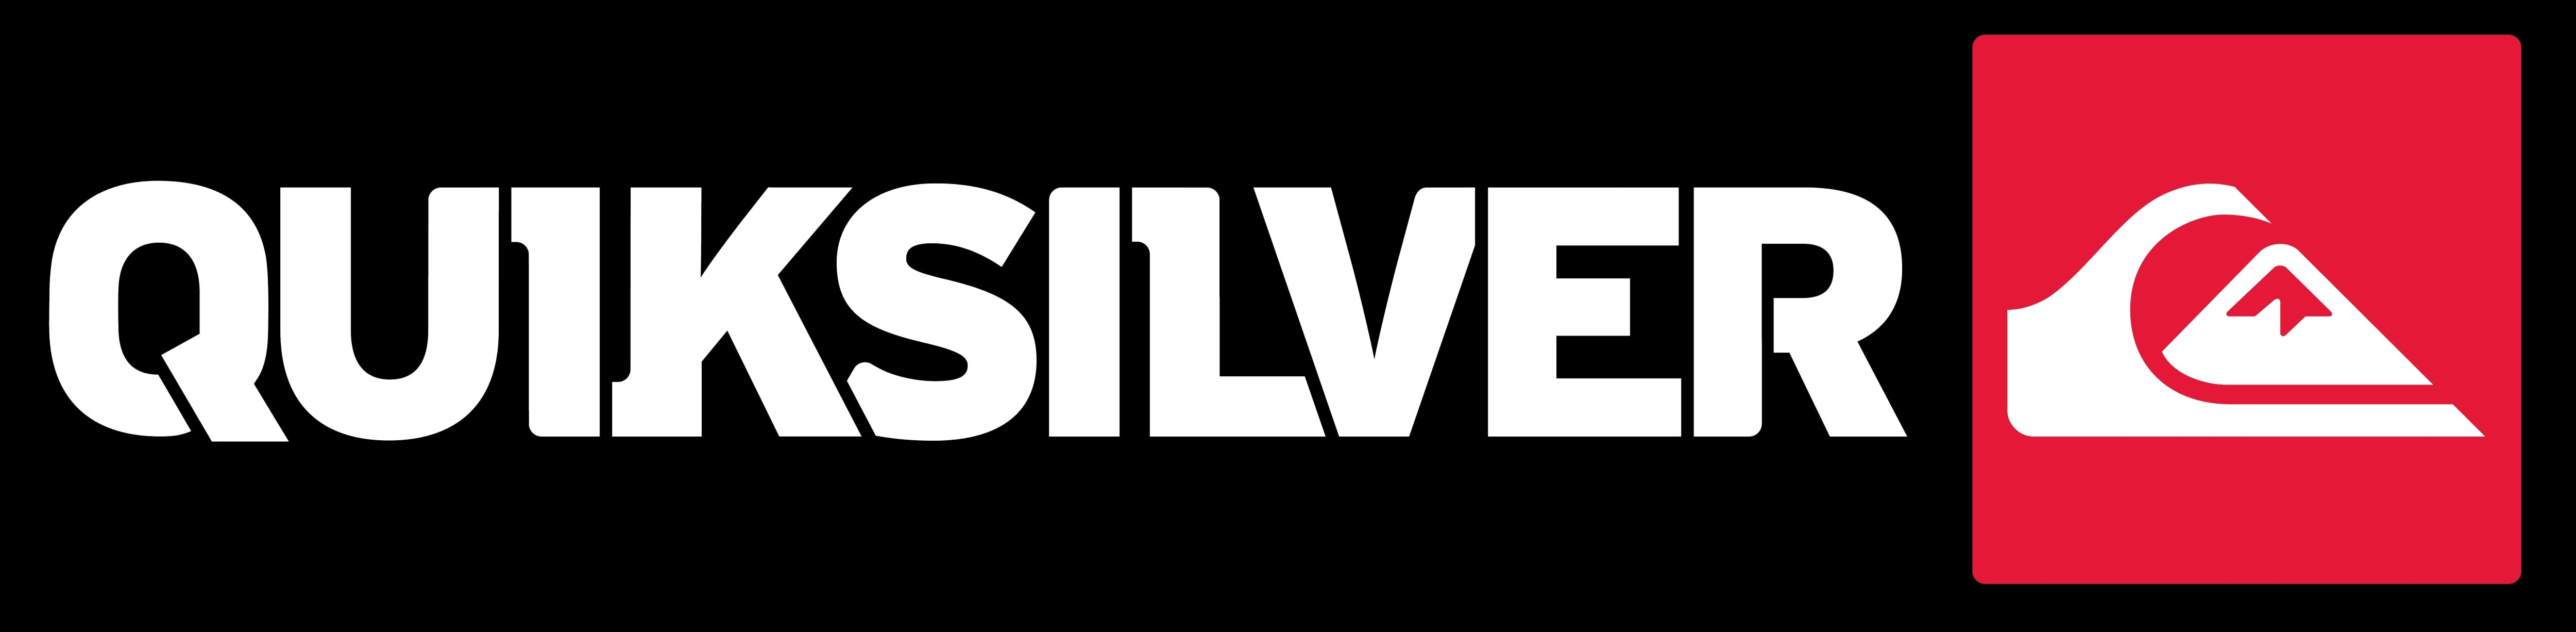 Quiksilver_black_wordmark_and_logo